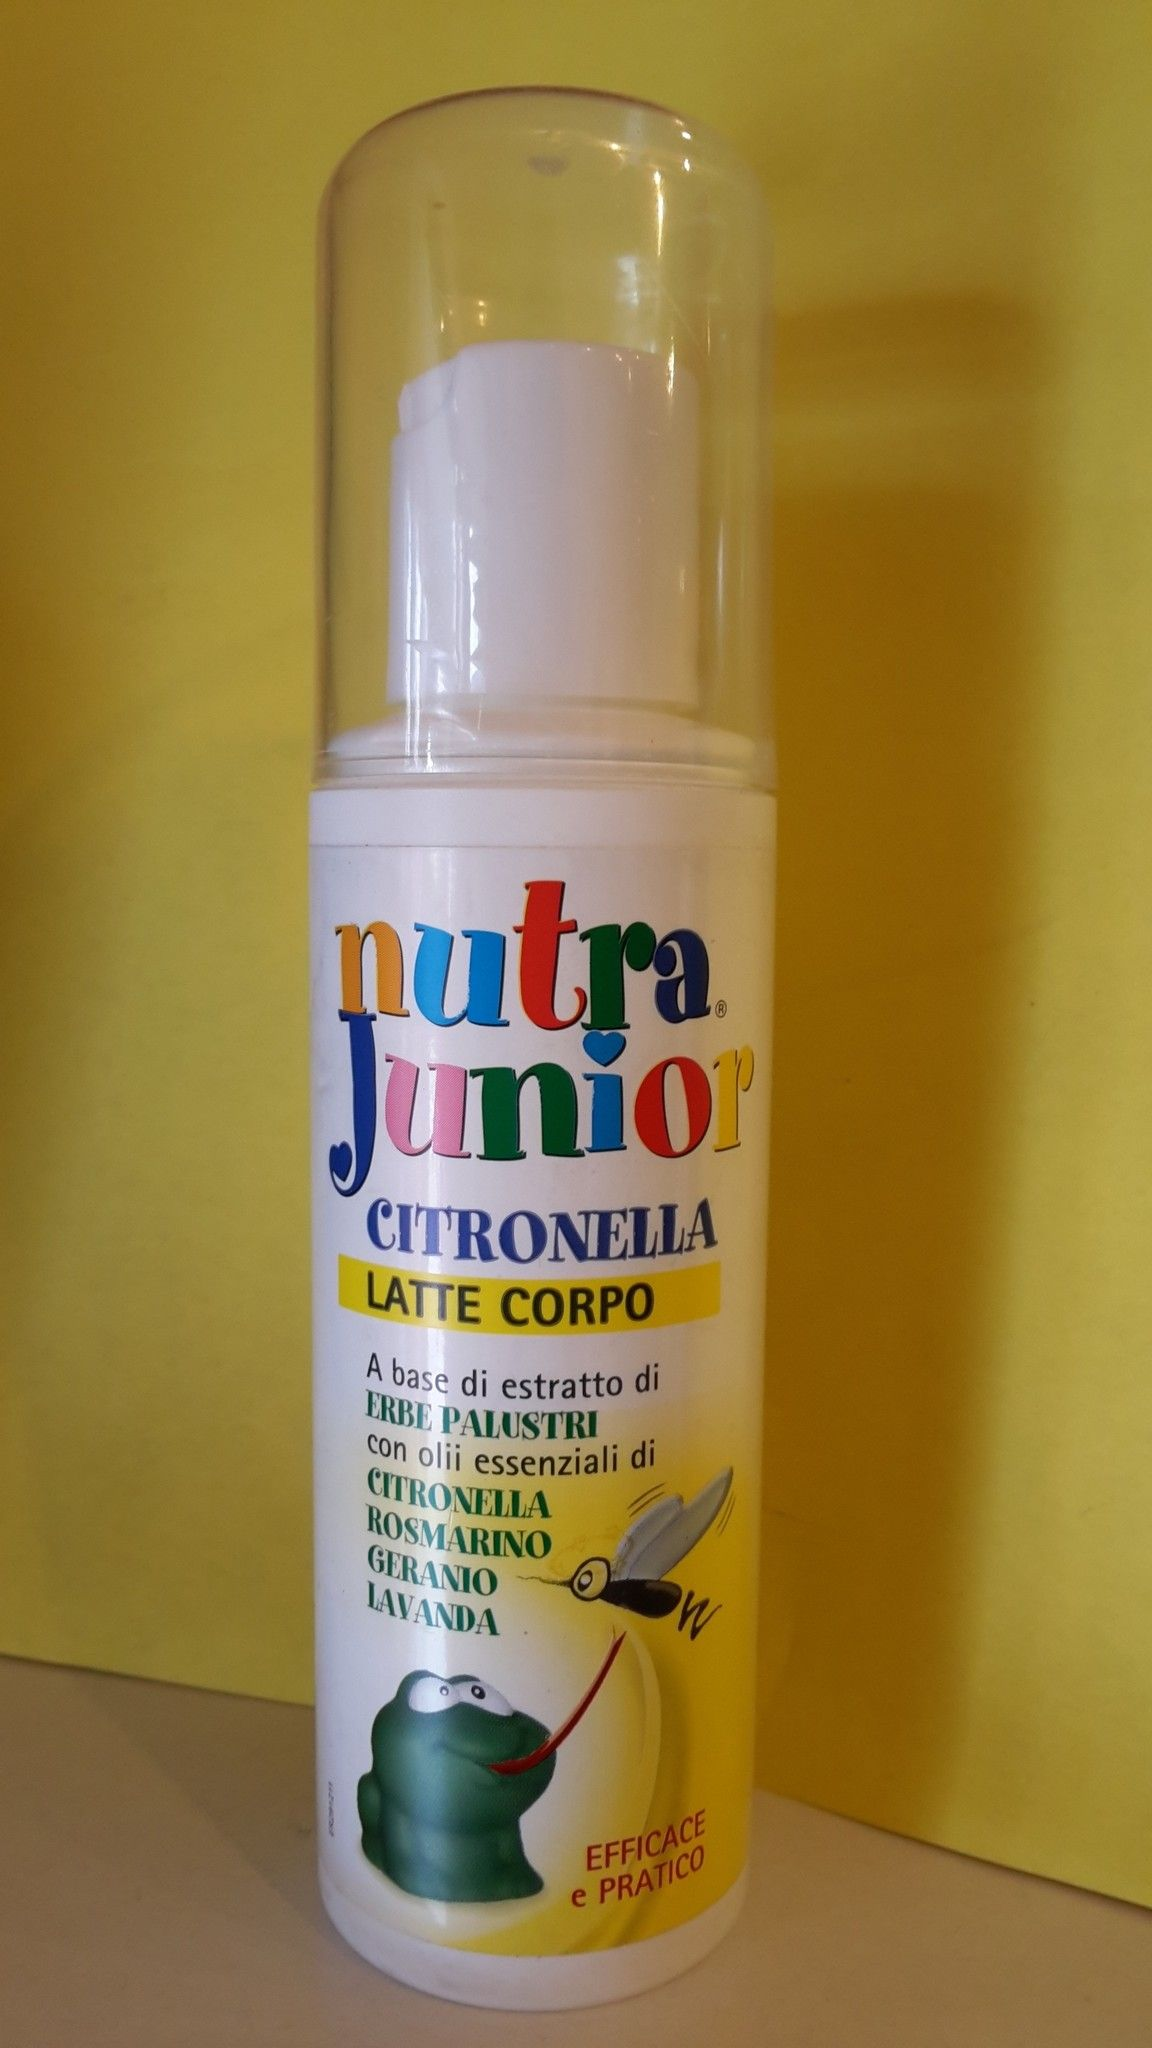 Nutra Junior ANTIZANZARE  Bimbi - Citronella 100 ml - Farmaderbe